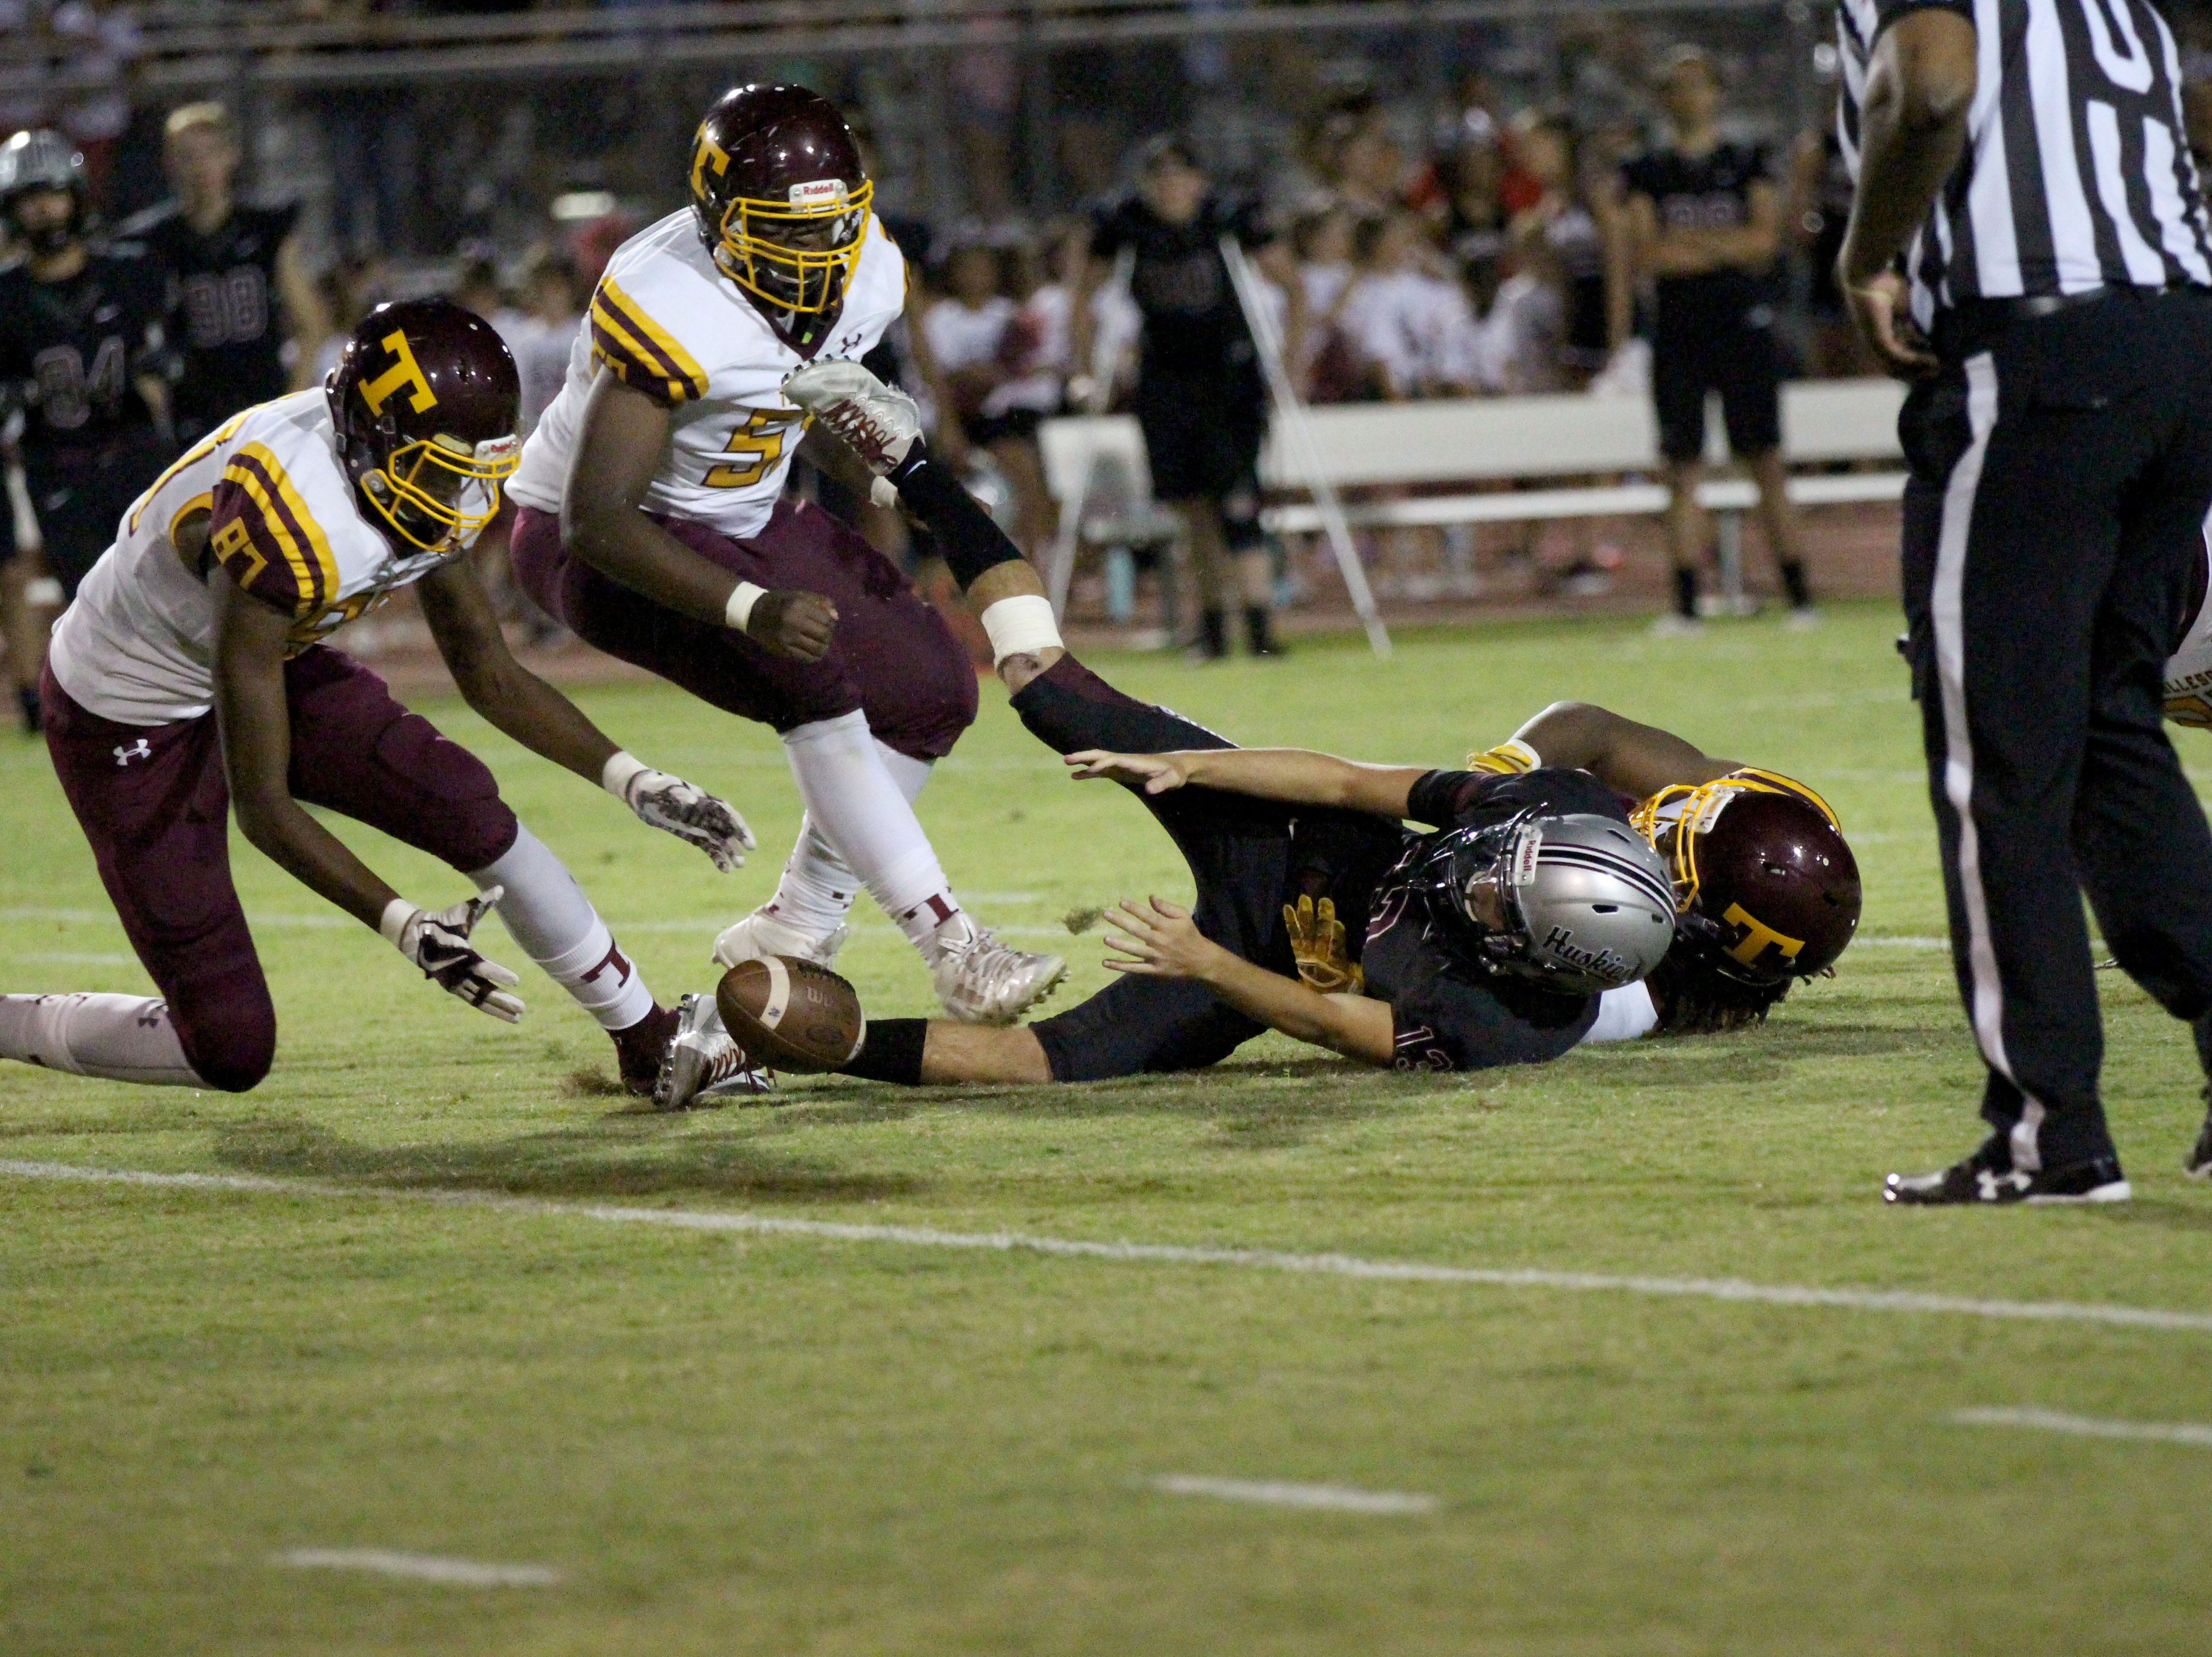 Tolleson's defense forces and recovers a fumble against Hamilton on Friday night in Chandler, Ariz. Sept. 7, 2018.